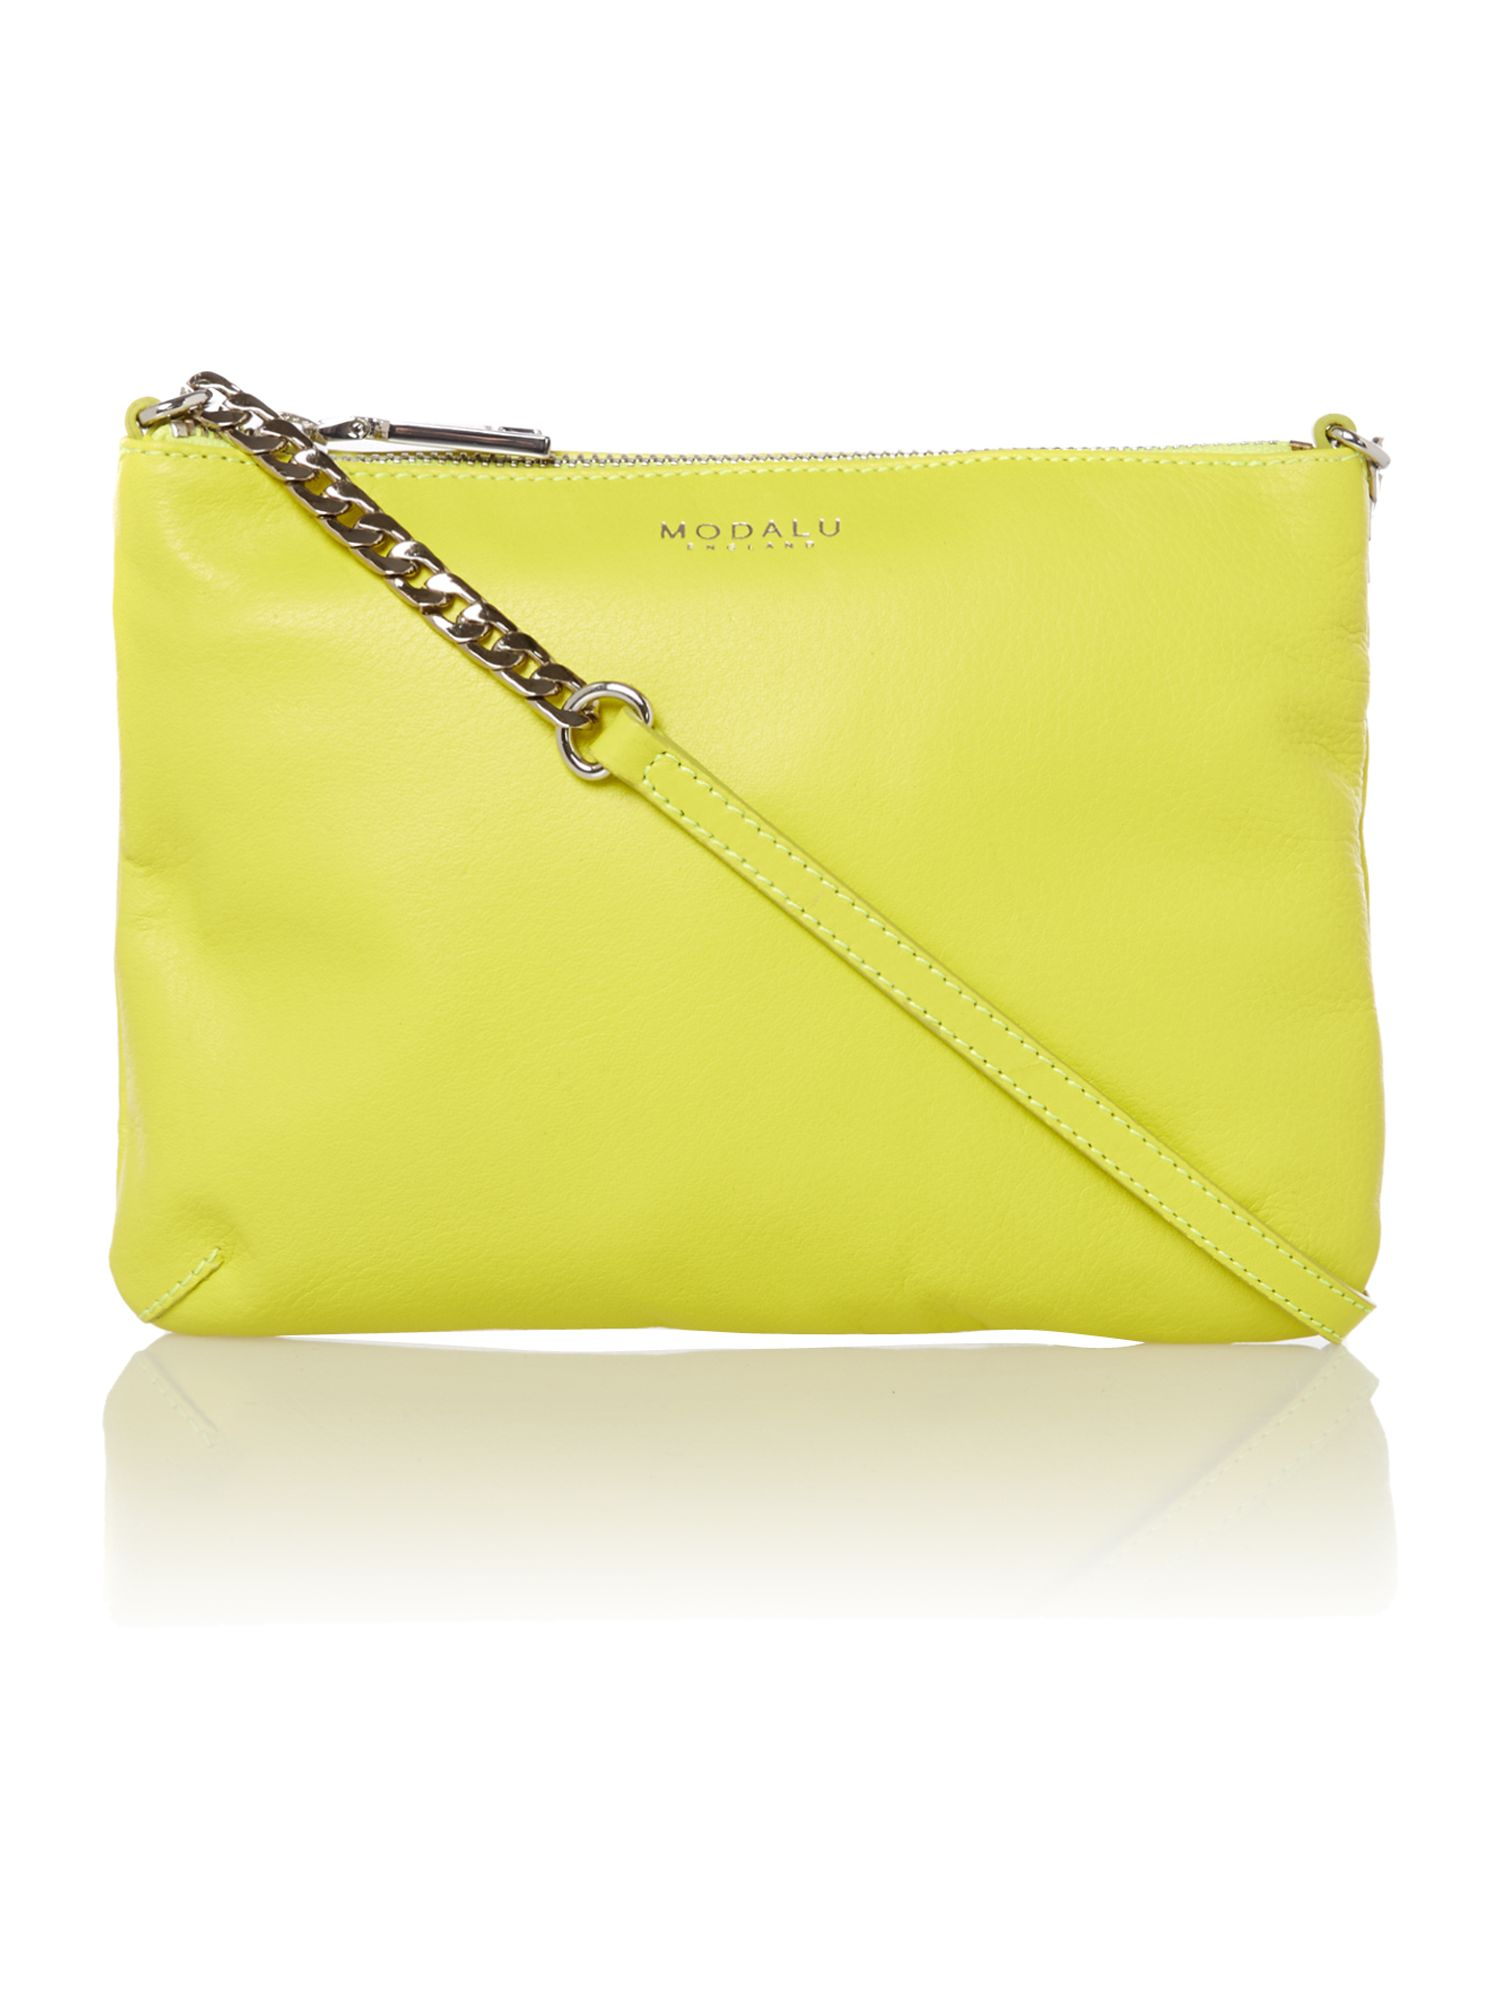 Twiggy small yellow cross body bag